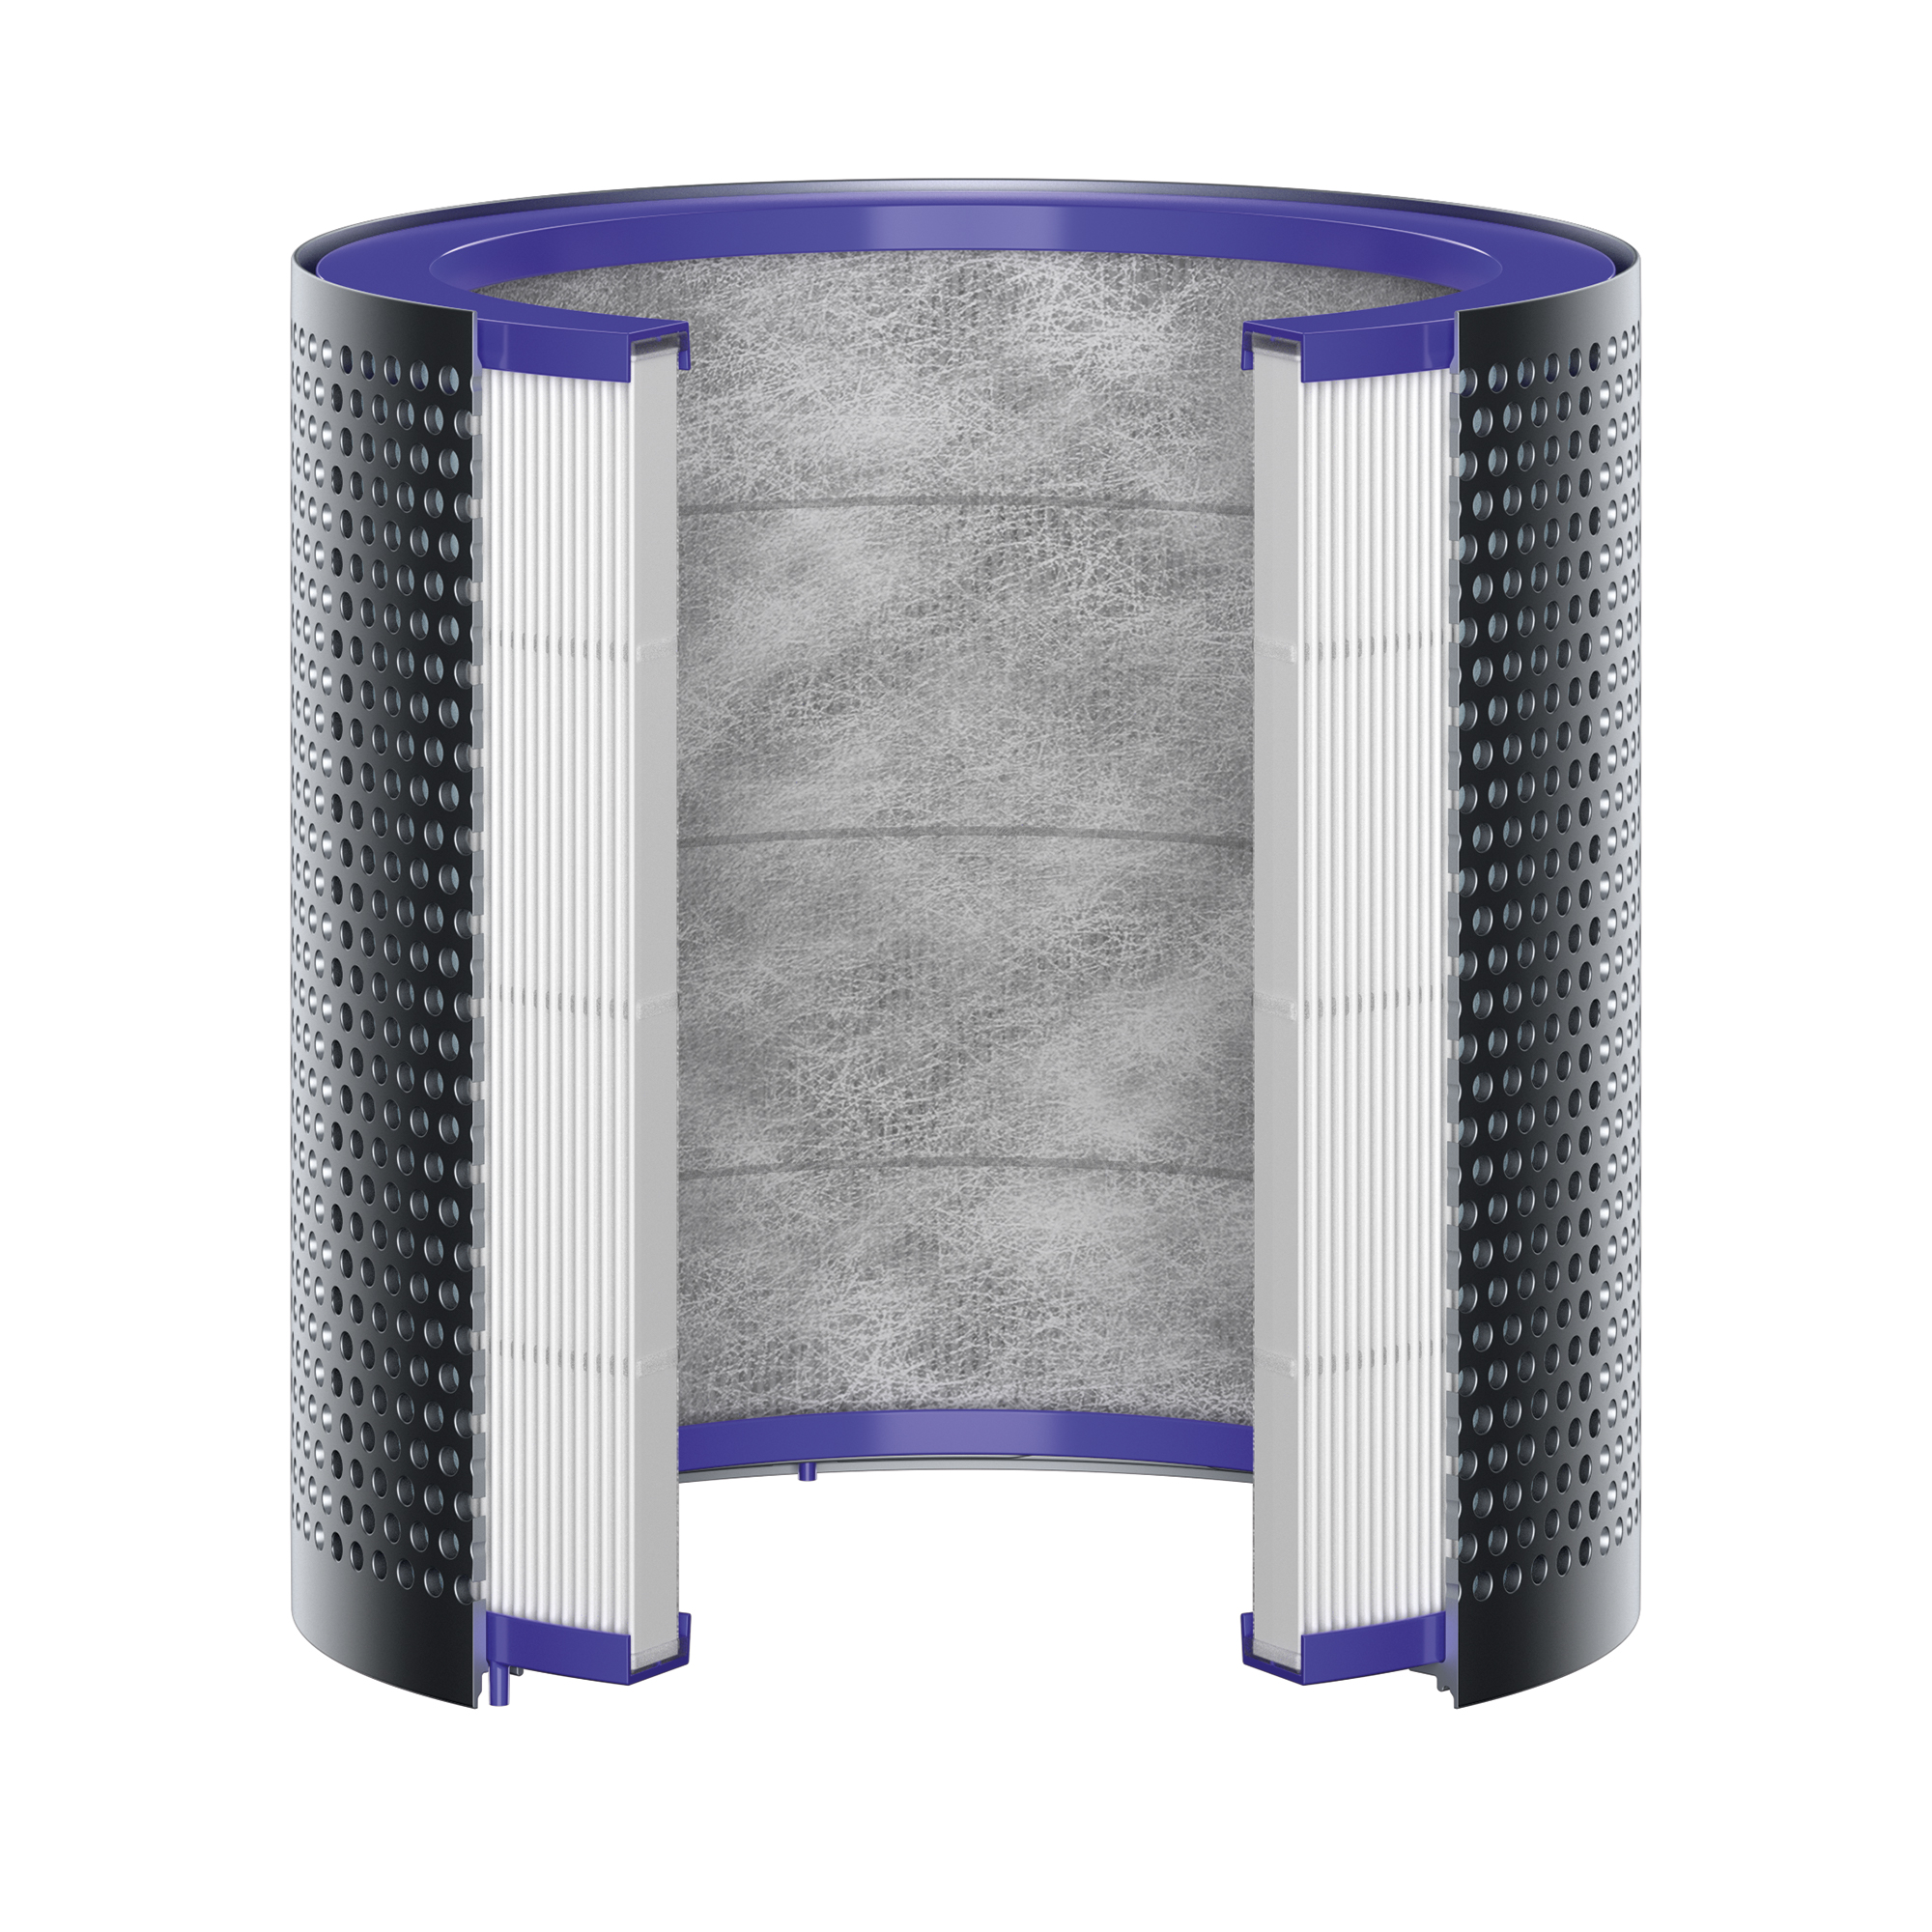 Dyson-AM11-Pure-Cool-Tower-Purifier-amp-Fan thumbnail 10